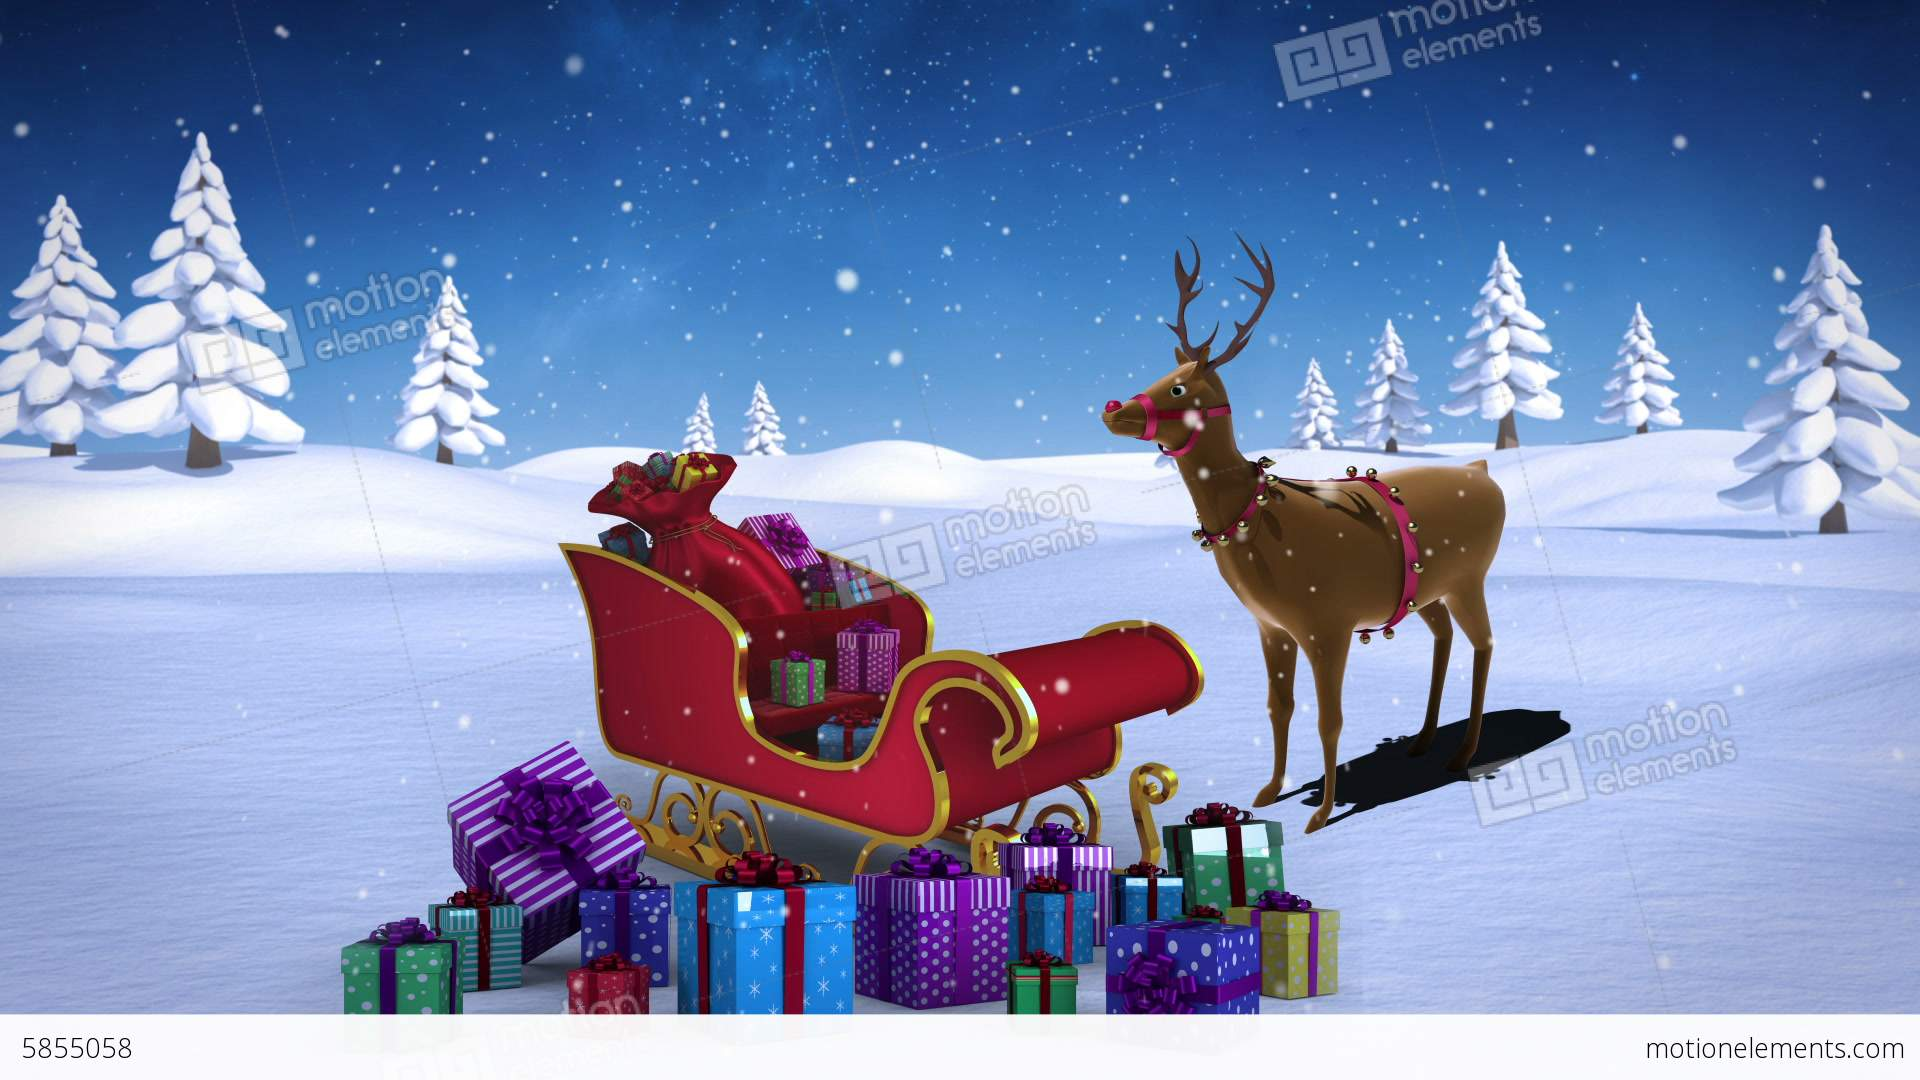 rudolph with santa sled full of gifts in snowy landscape stock video footage - Rudolph And Santa